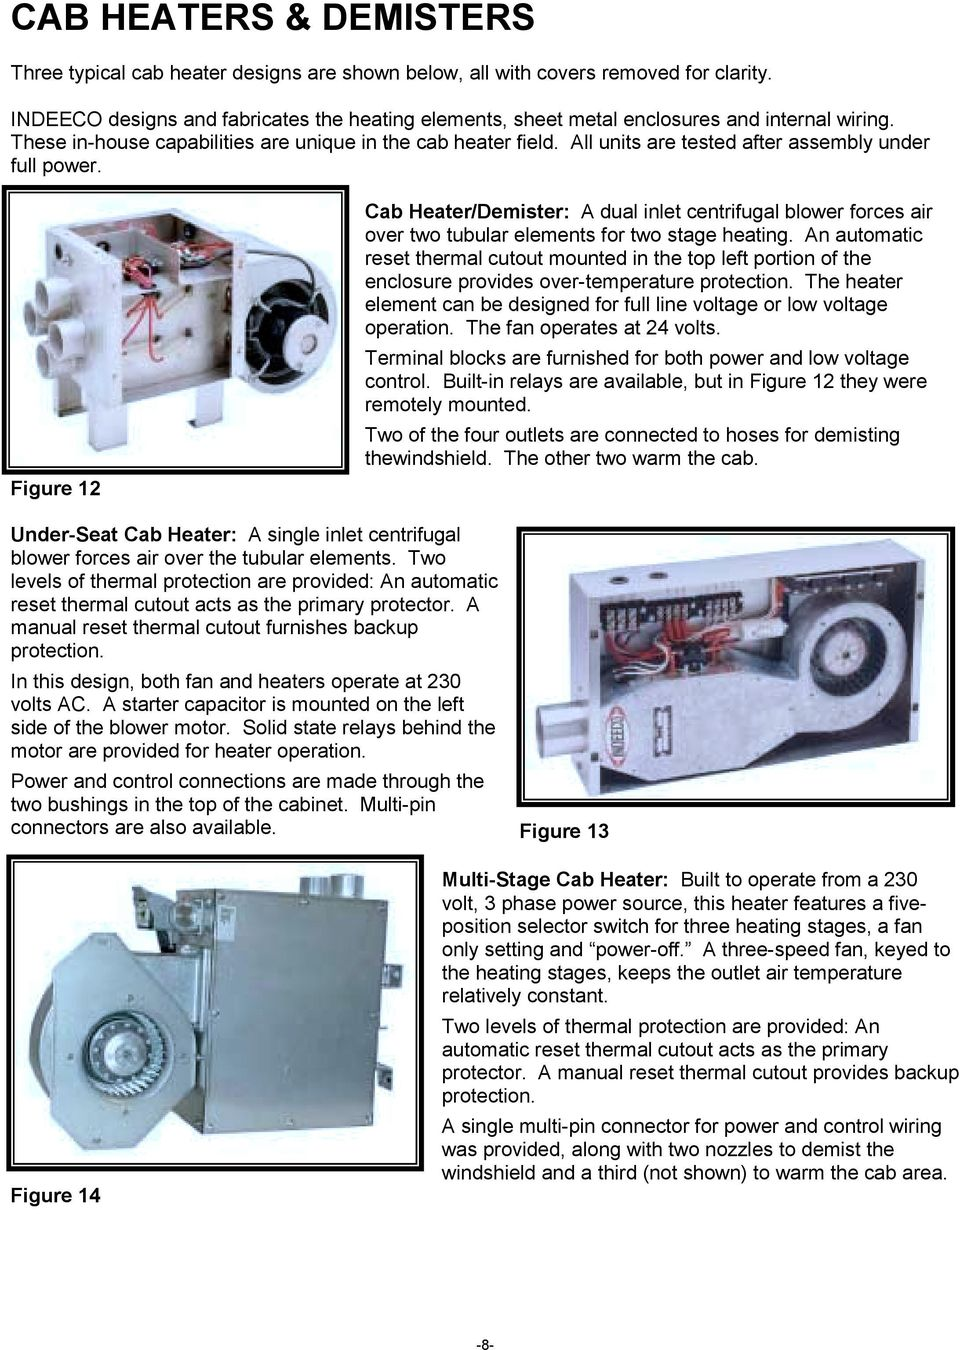 All units are tested after assembly under full power. Figure 12 Cab Heater/Demister: A dual inlet centrifugal blower forces air over two tubular elements for two stage heating.